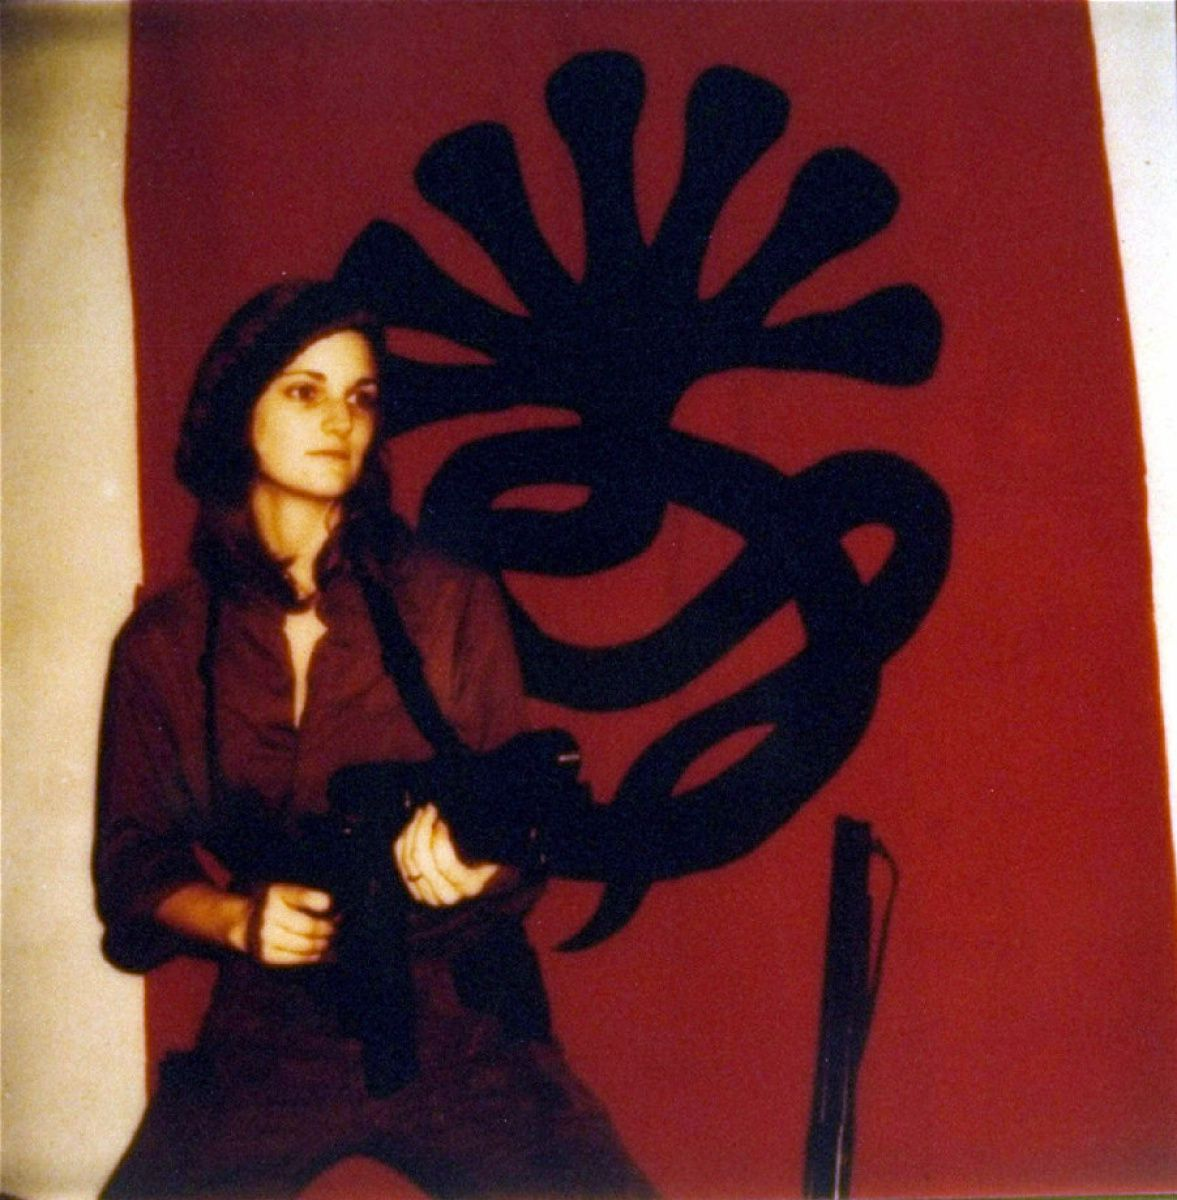 When Patty Hearst became 'Tania' | The Star